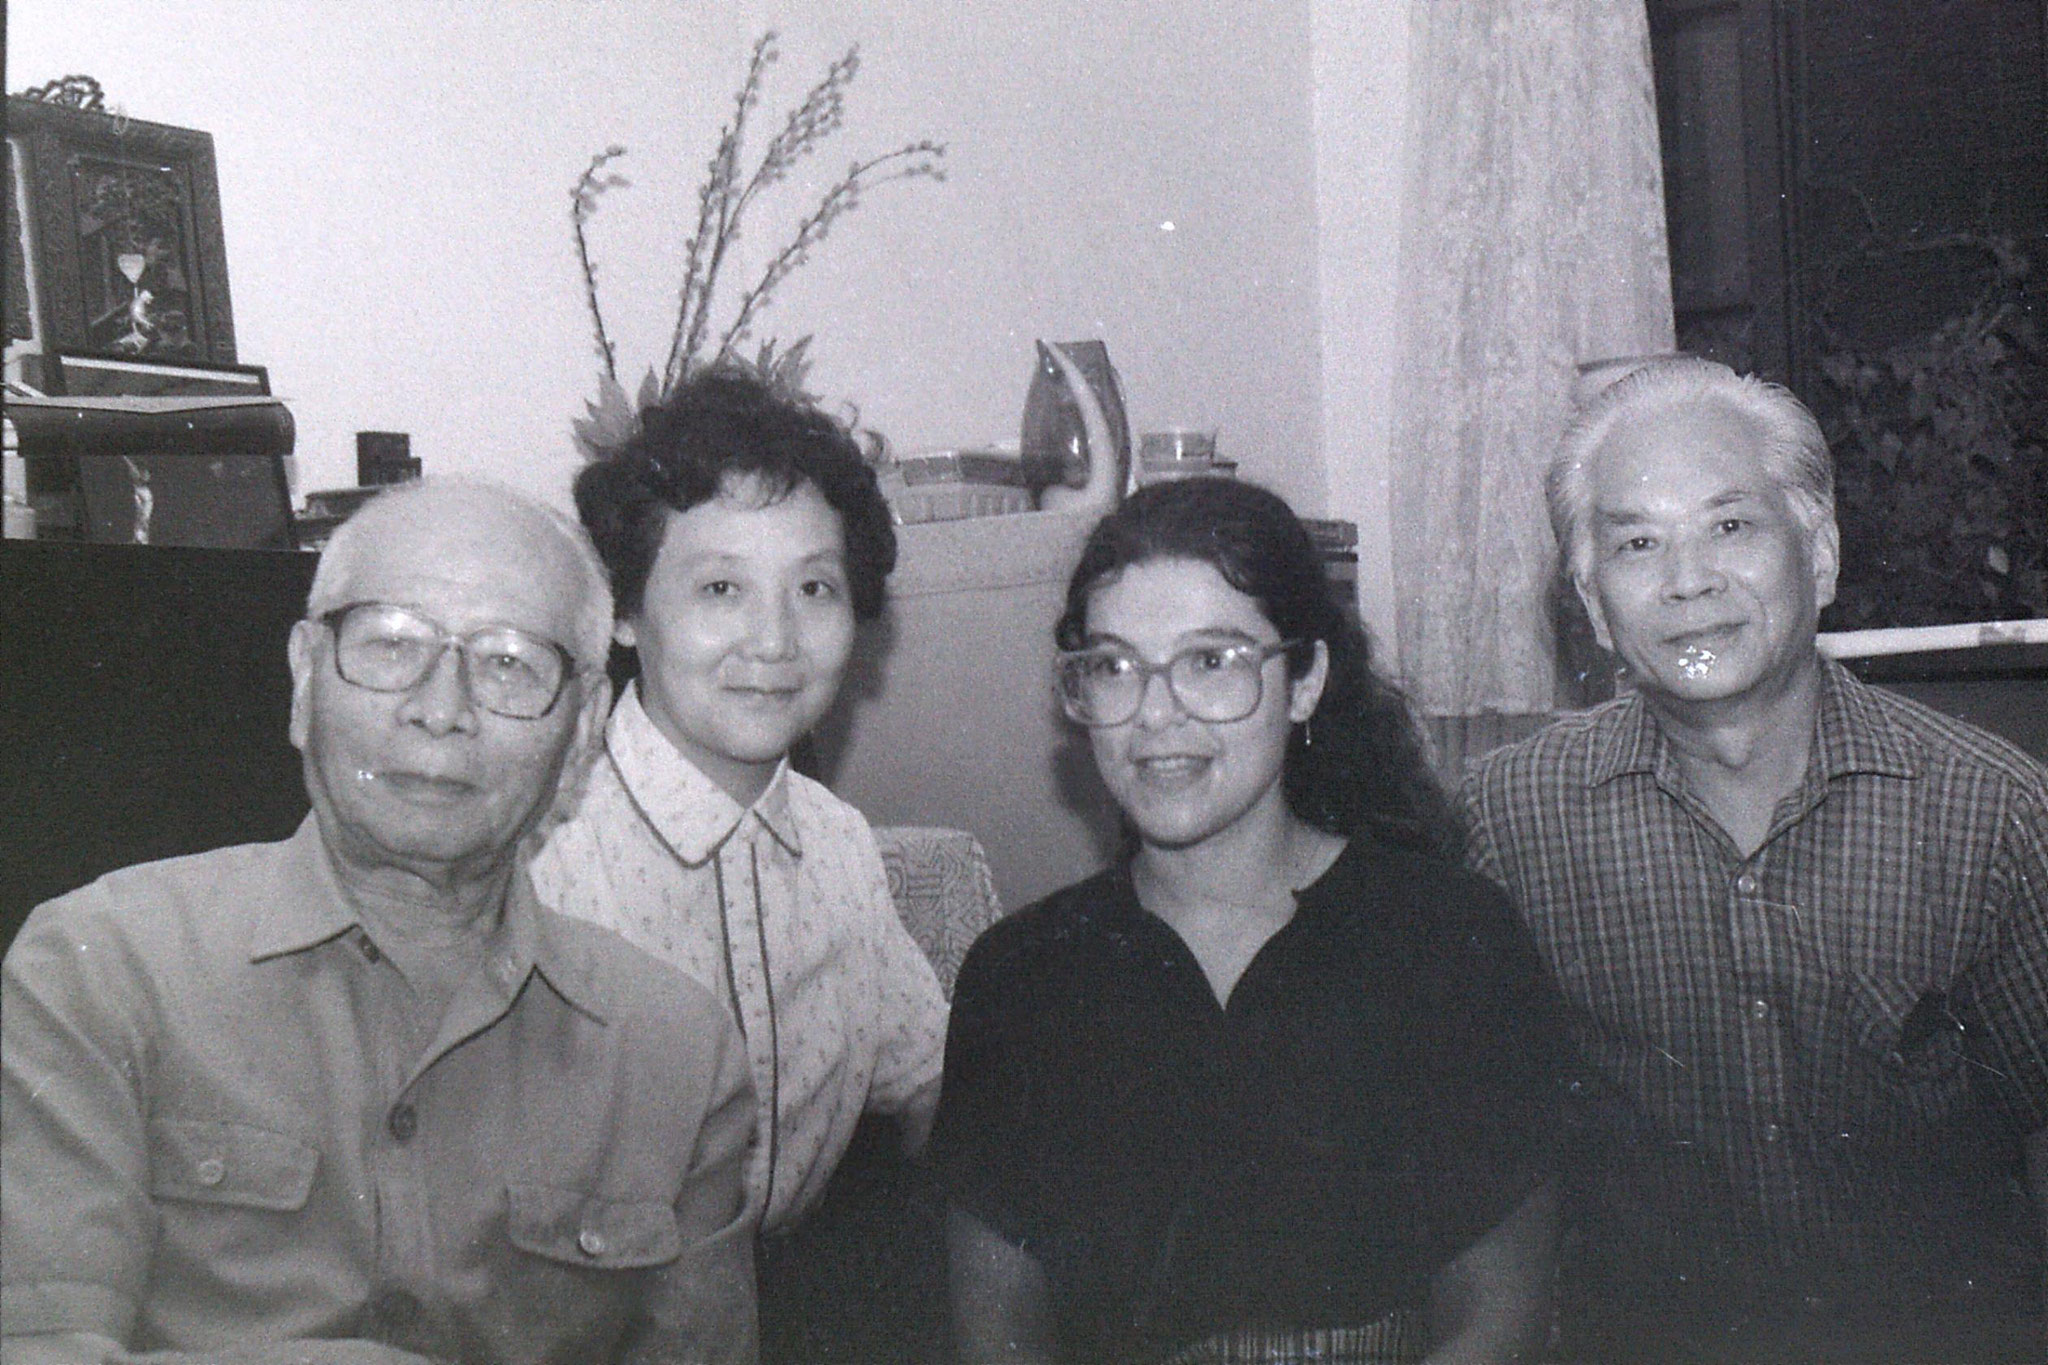 2/7/1989: 7: Shanghai, Lin family appartment